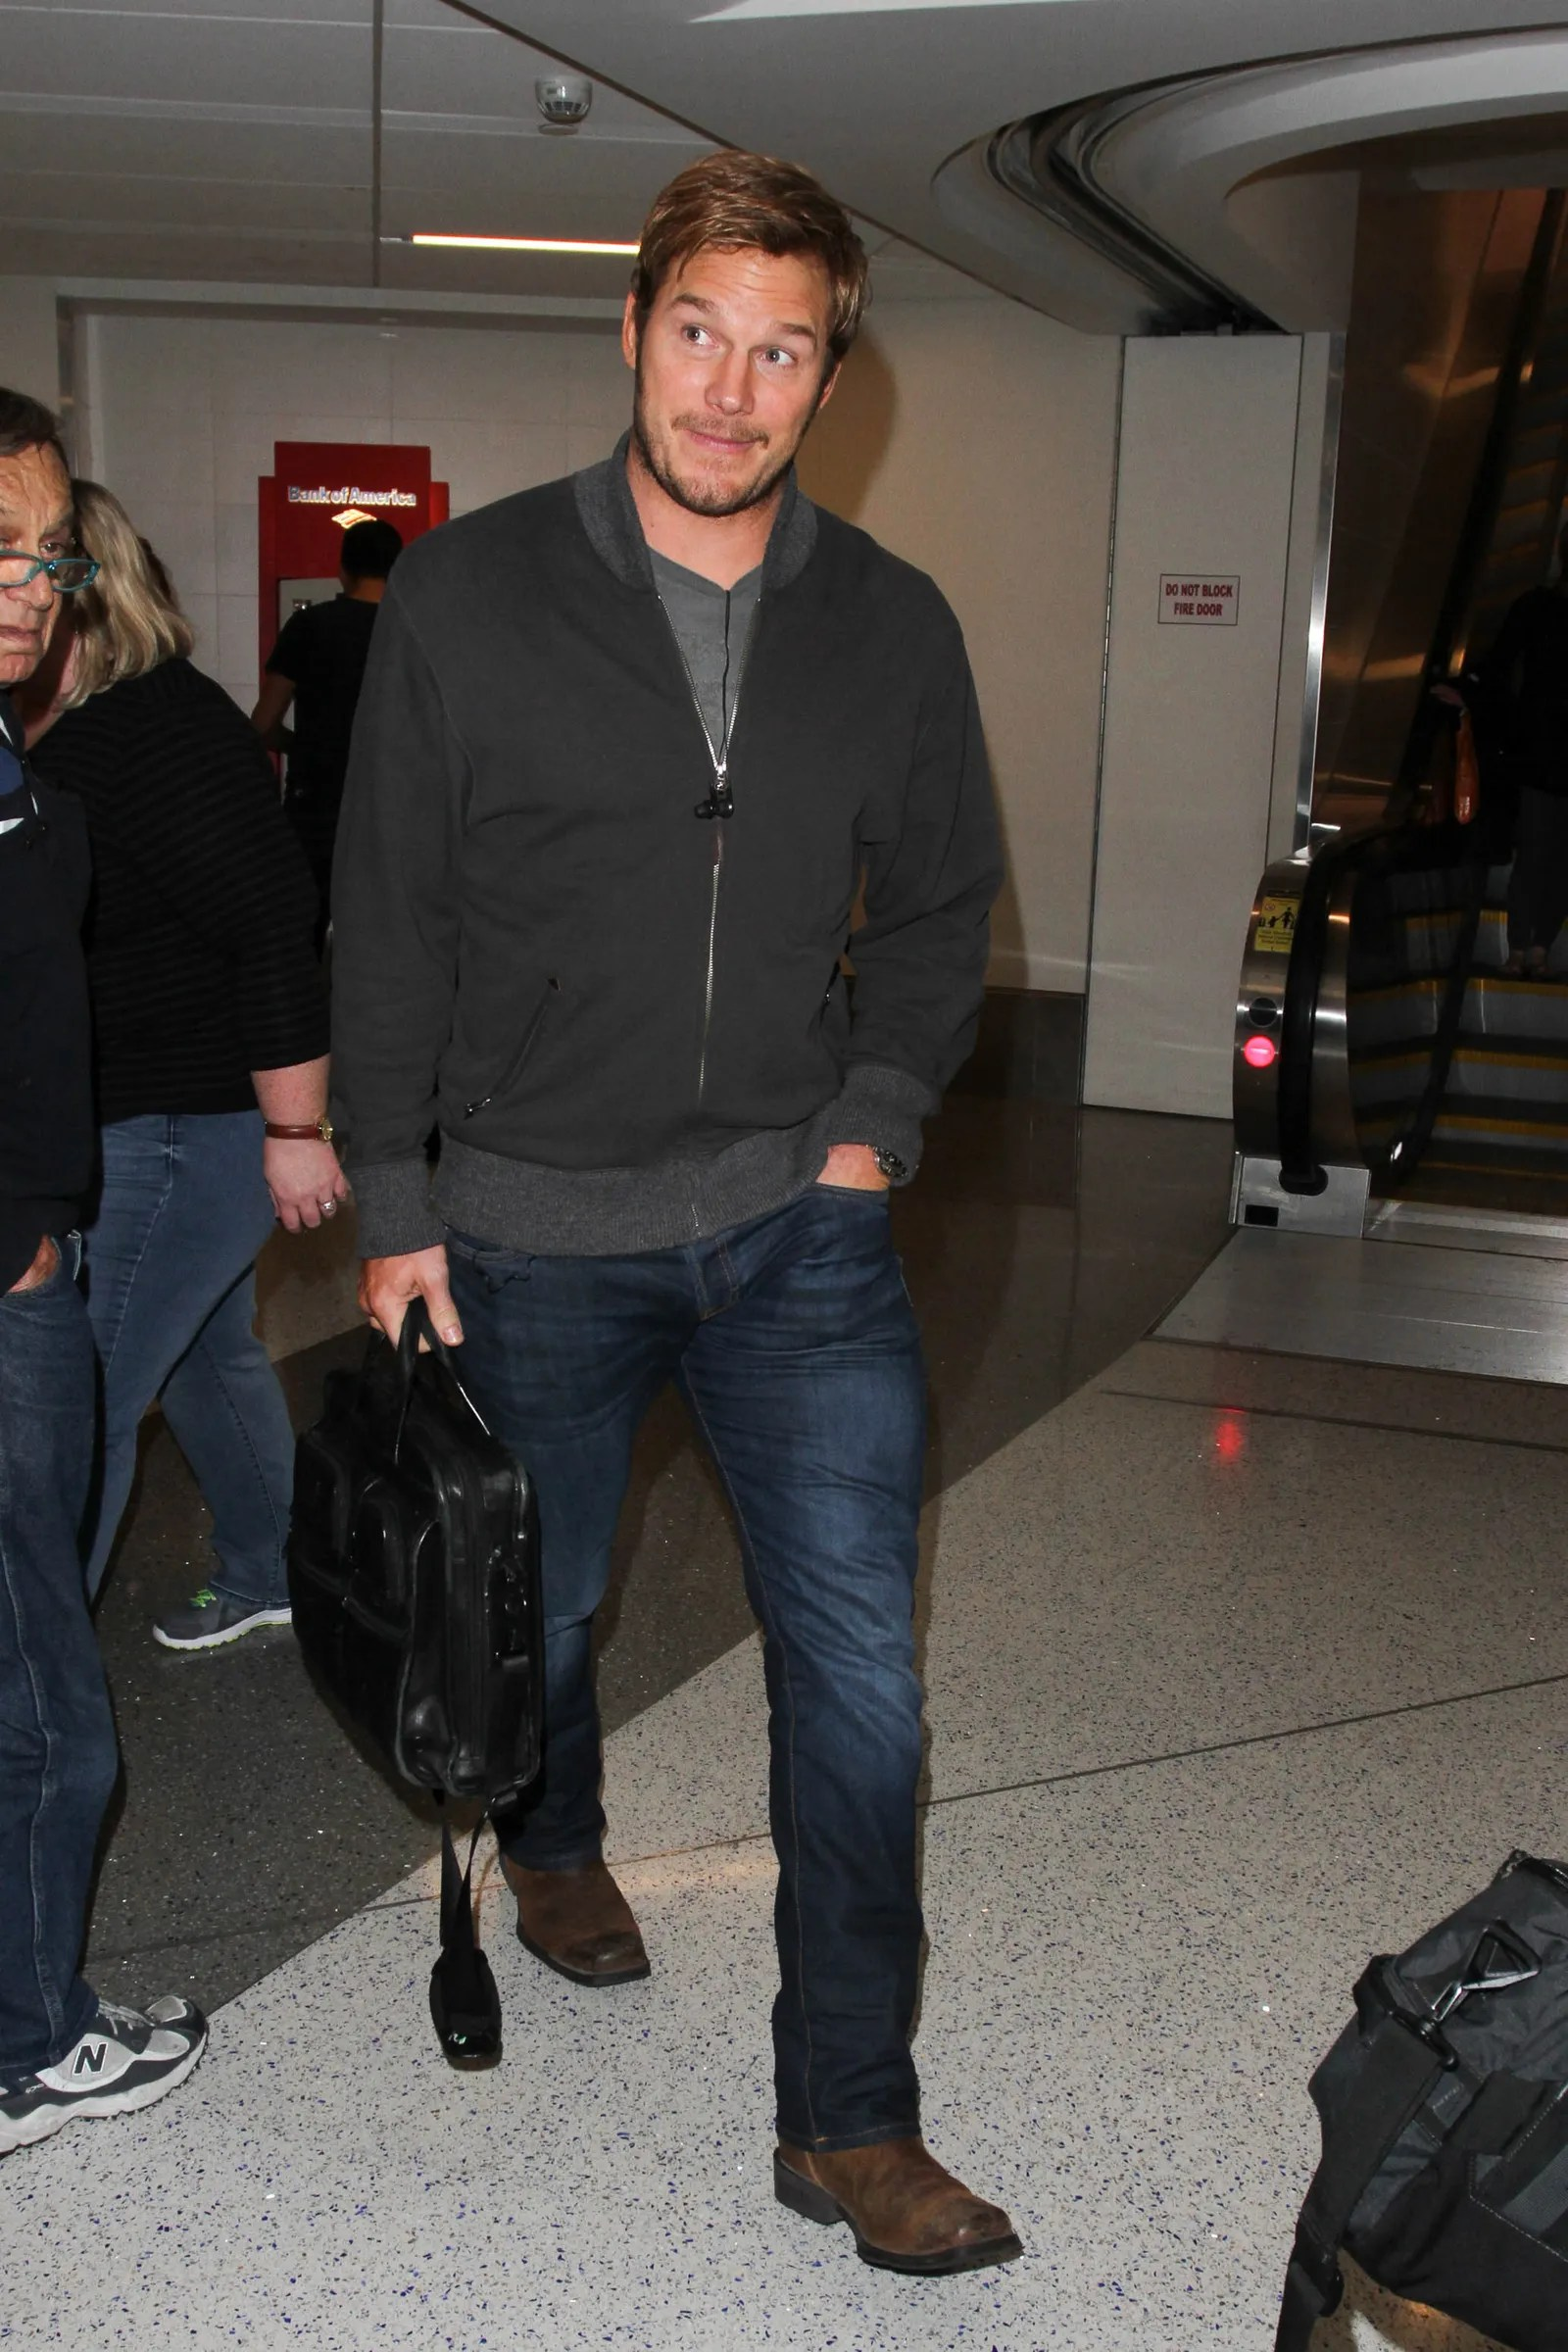 Hair Style Man Zero What 39;s Going On With Chris Pratt 39;s Hair Gq